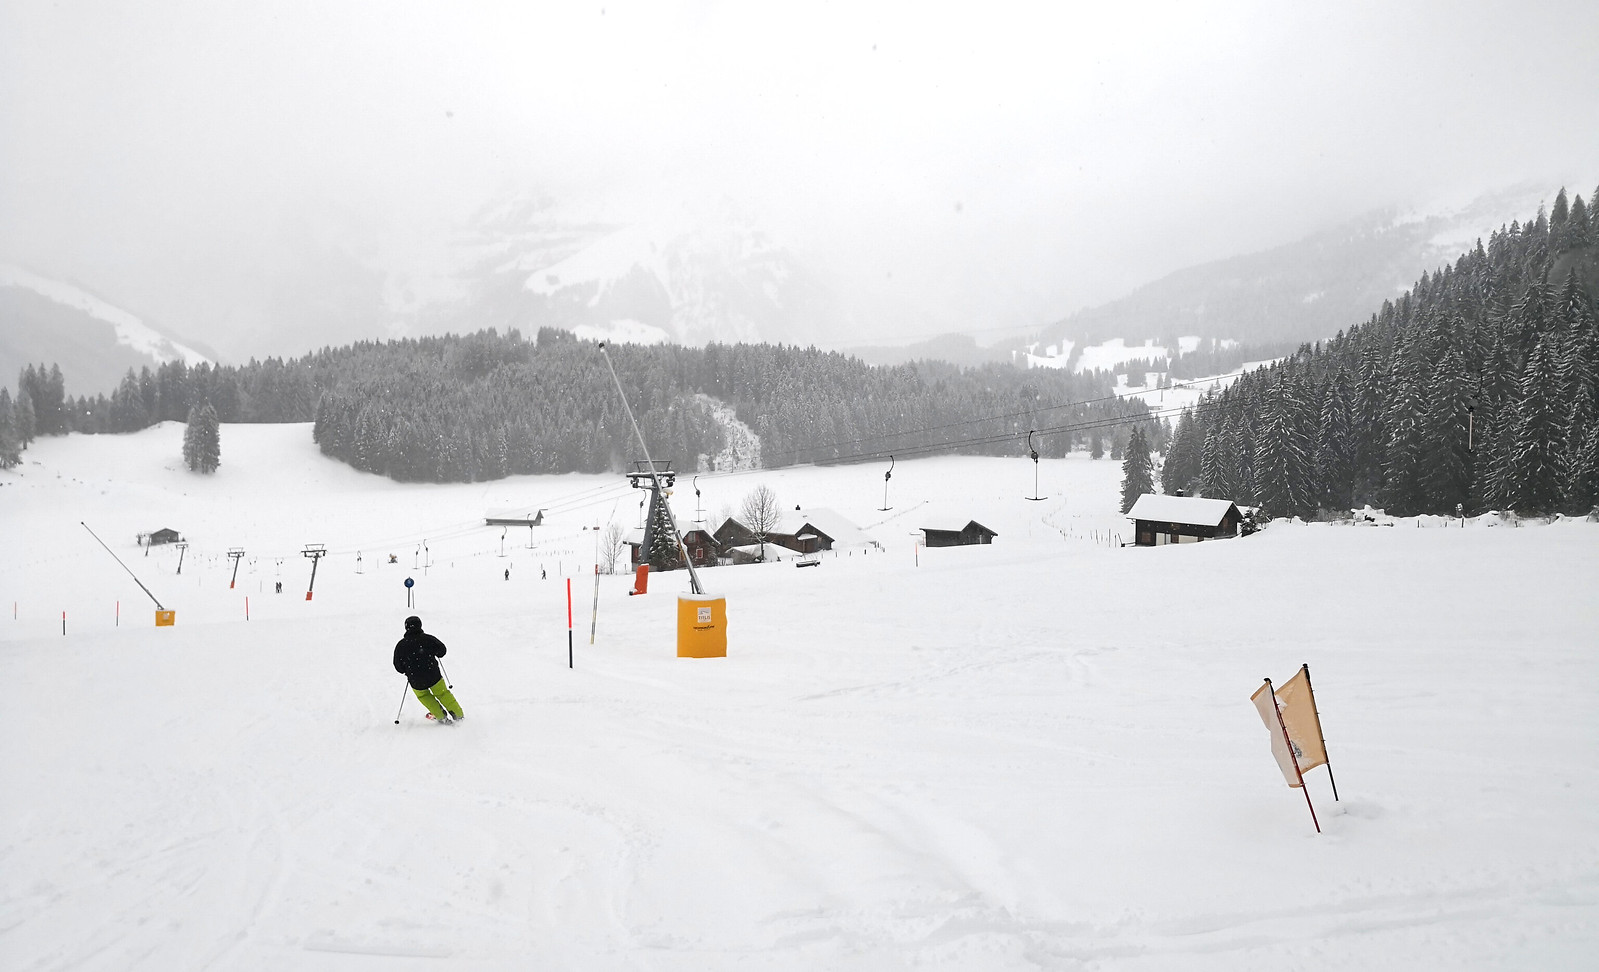 T-bar at Untertrübsee